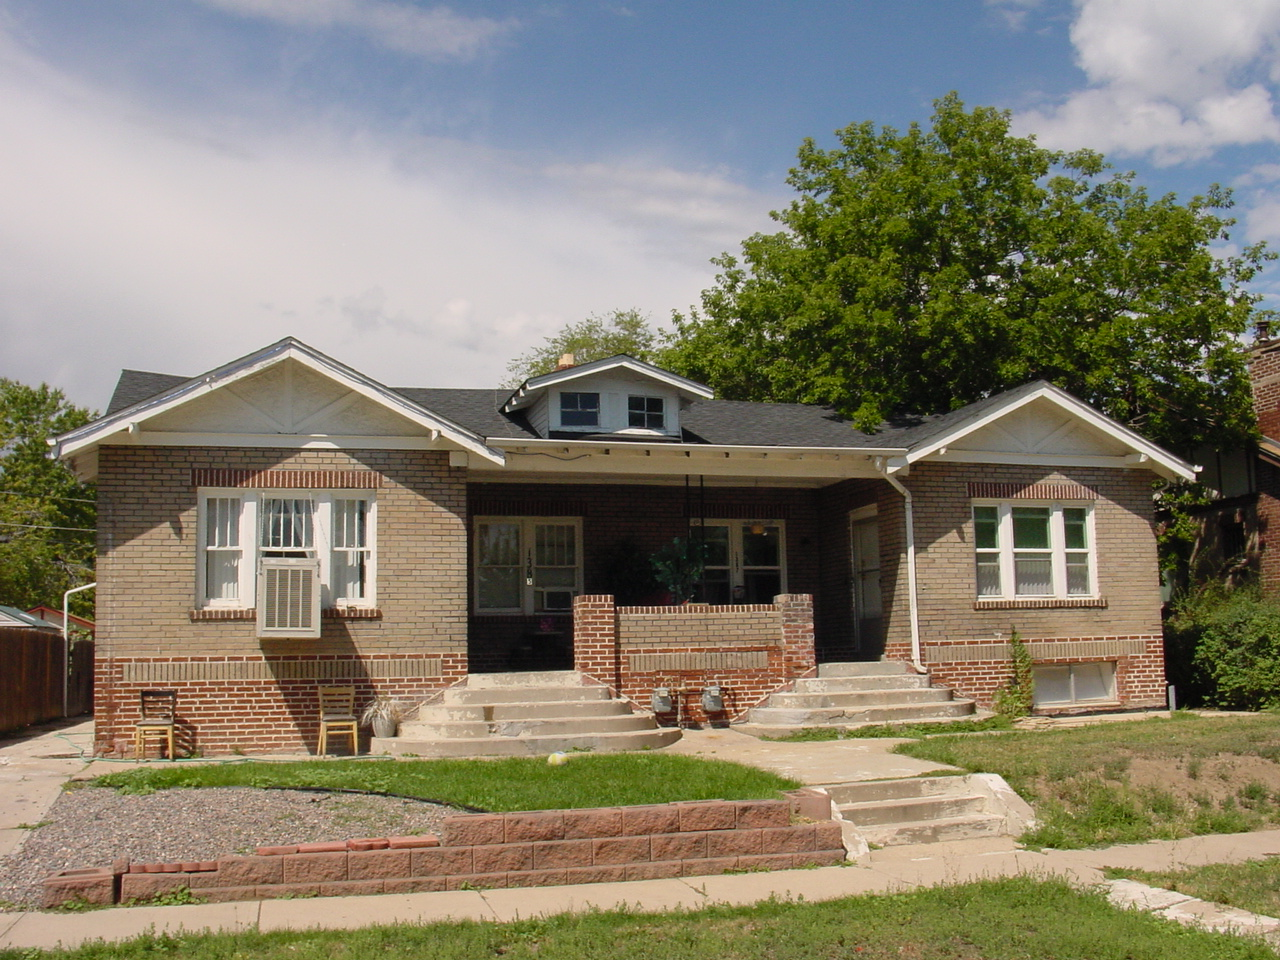 Denver duplex sold near sloan s lake denver apartment for Duplex builders near me